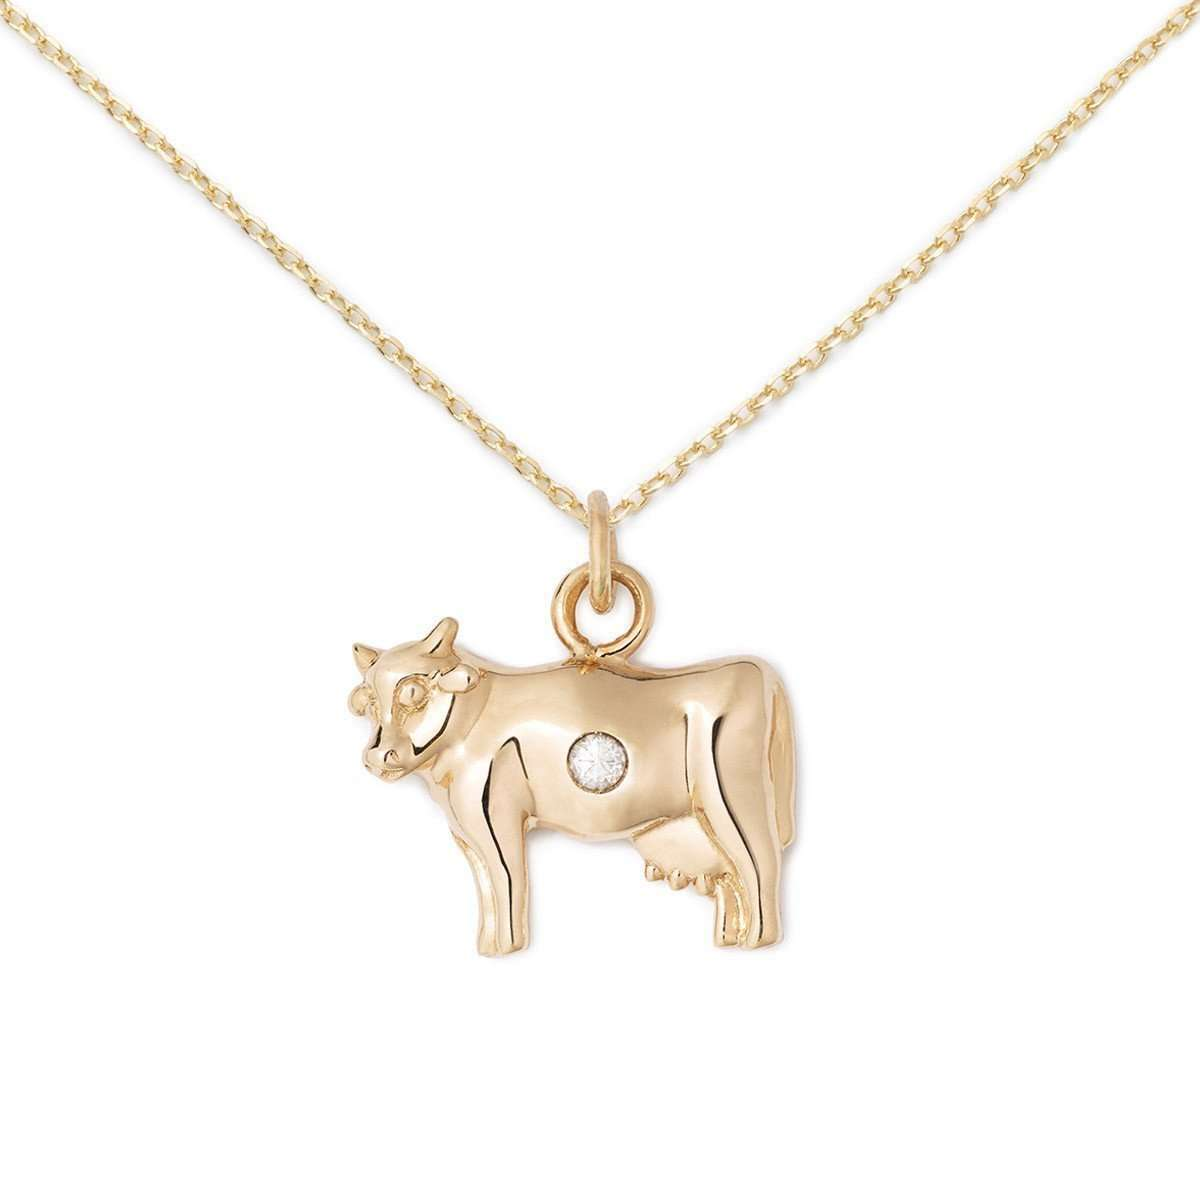 14K Gold + Diamond Cow Necklace-Delicacies Jewelry-JewelStreet US